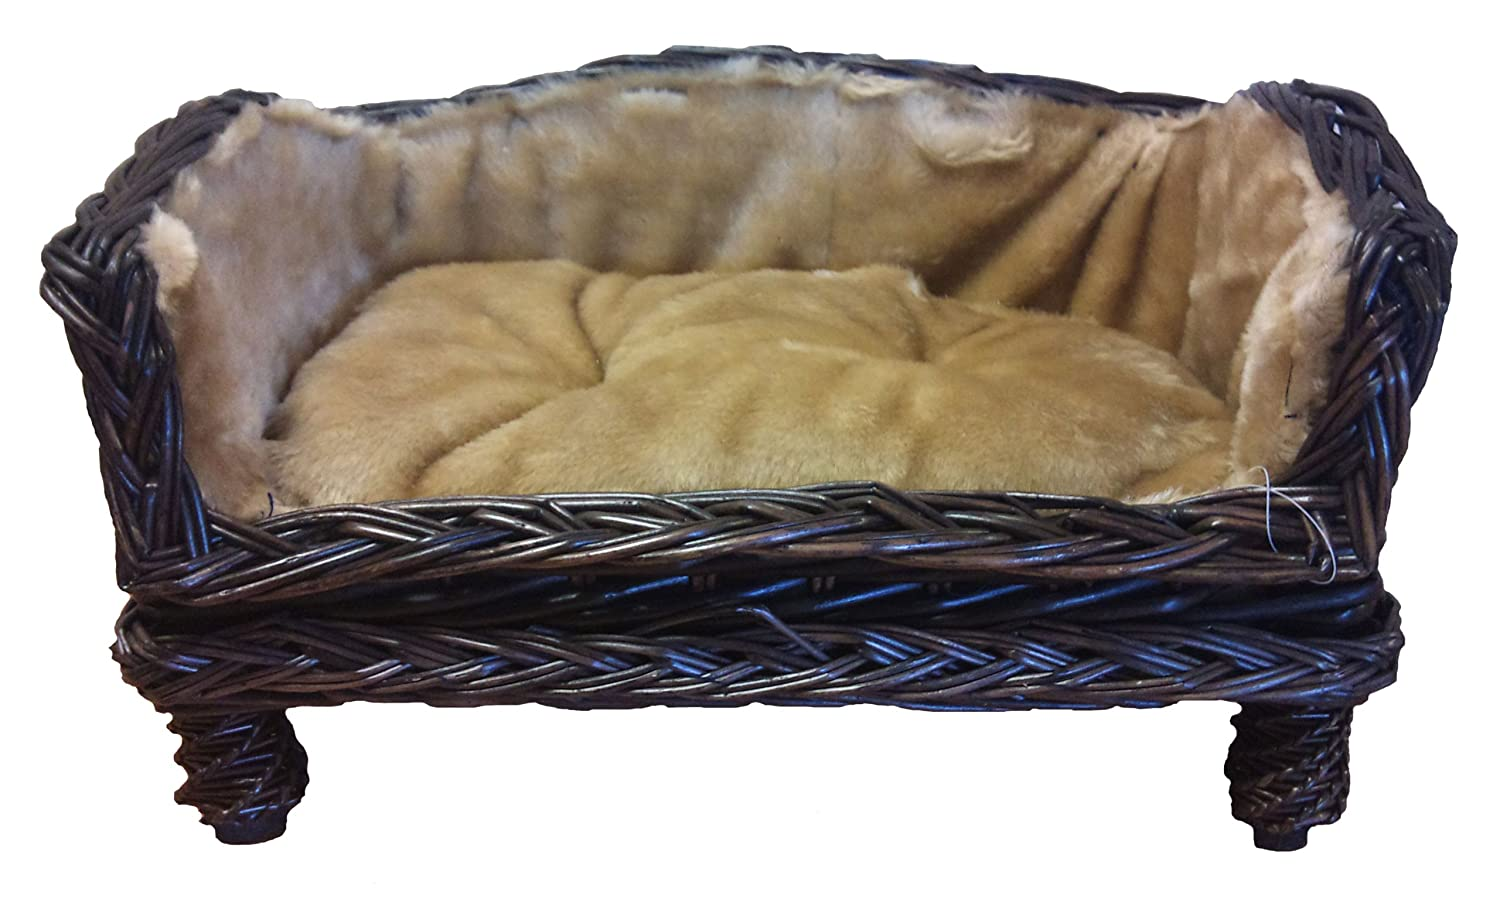 FAB Raised Wicker Sofa for Cats